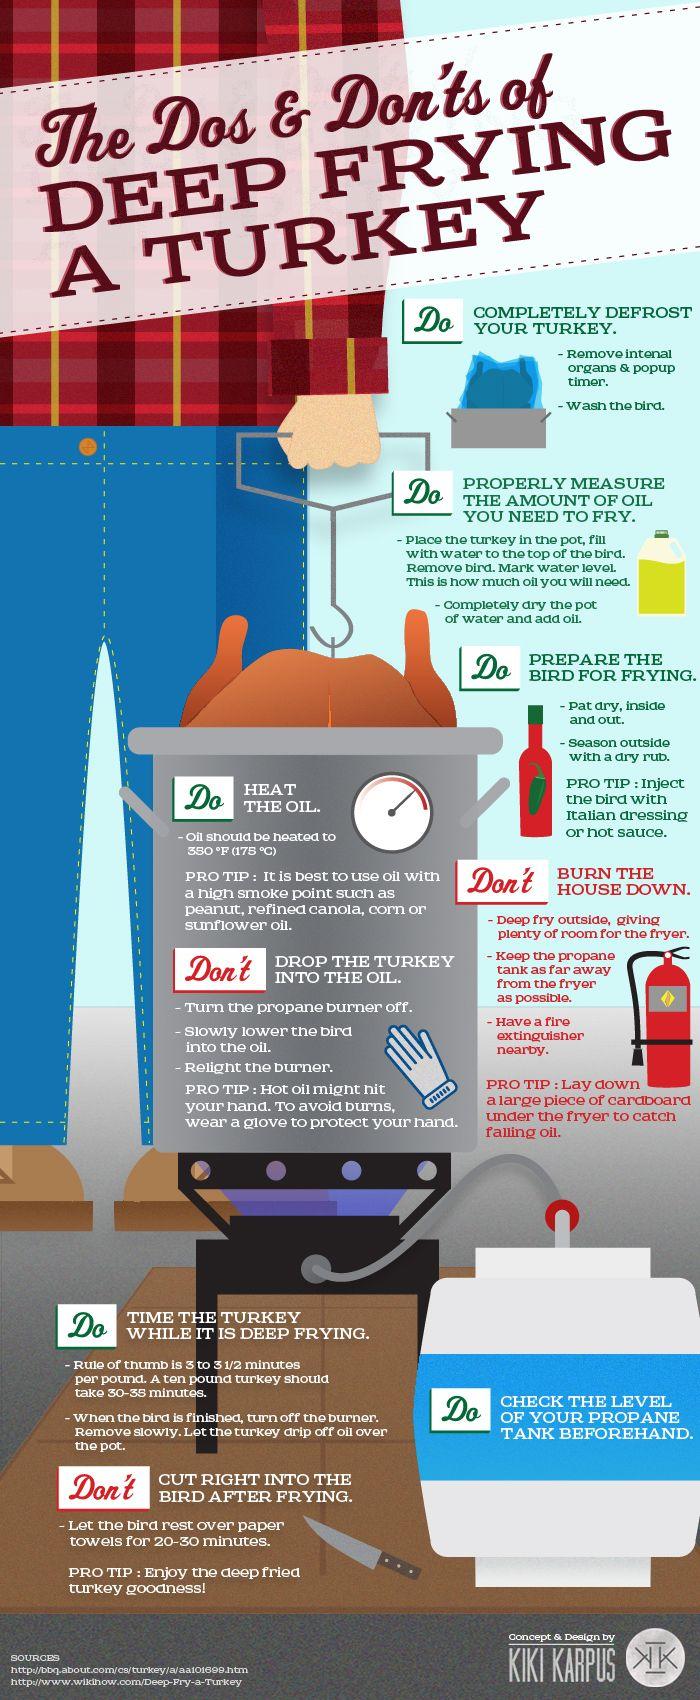 The Dos And Don'ts Of Deep Frying A Turkey  #Infographic #Turkey #Food